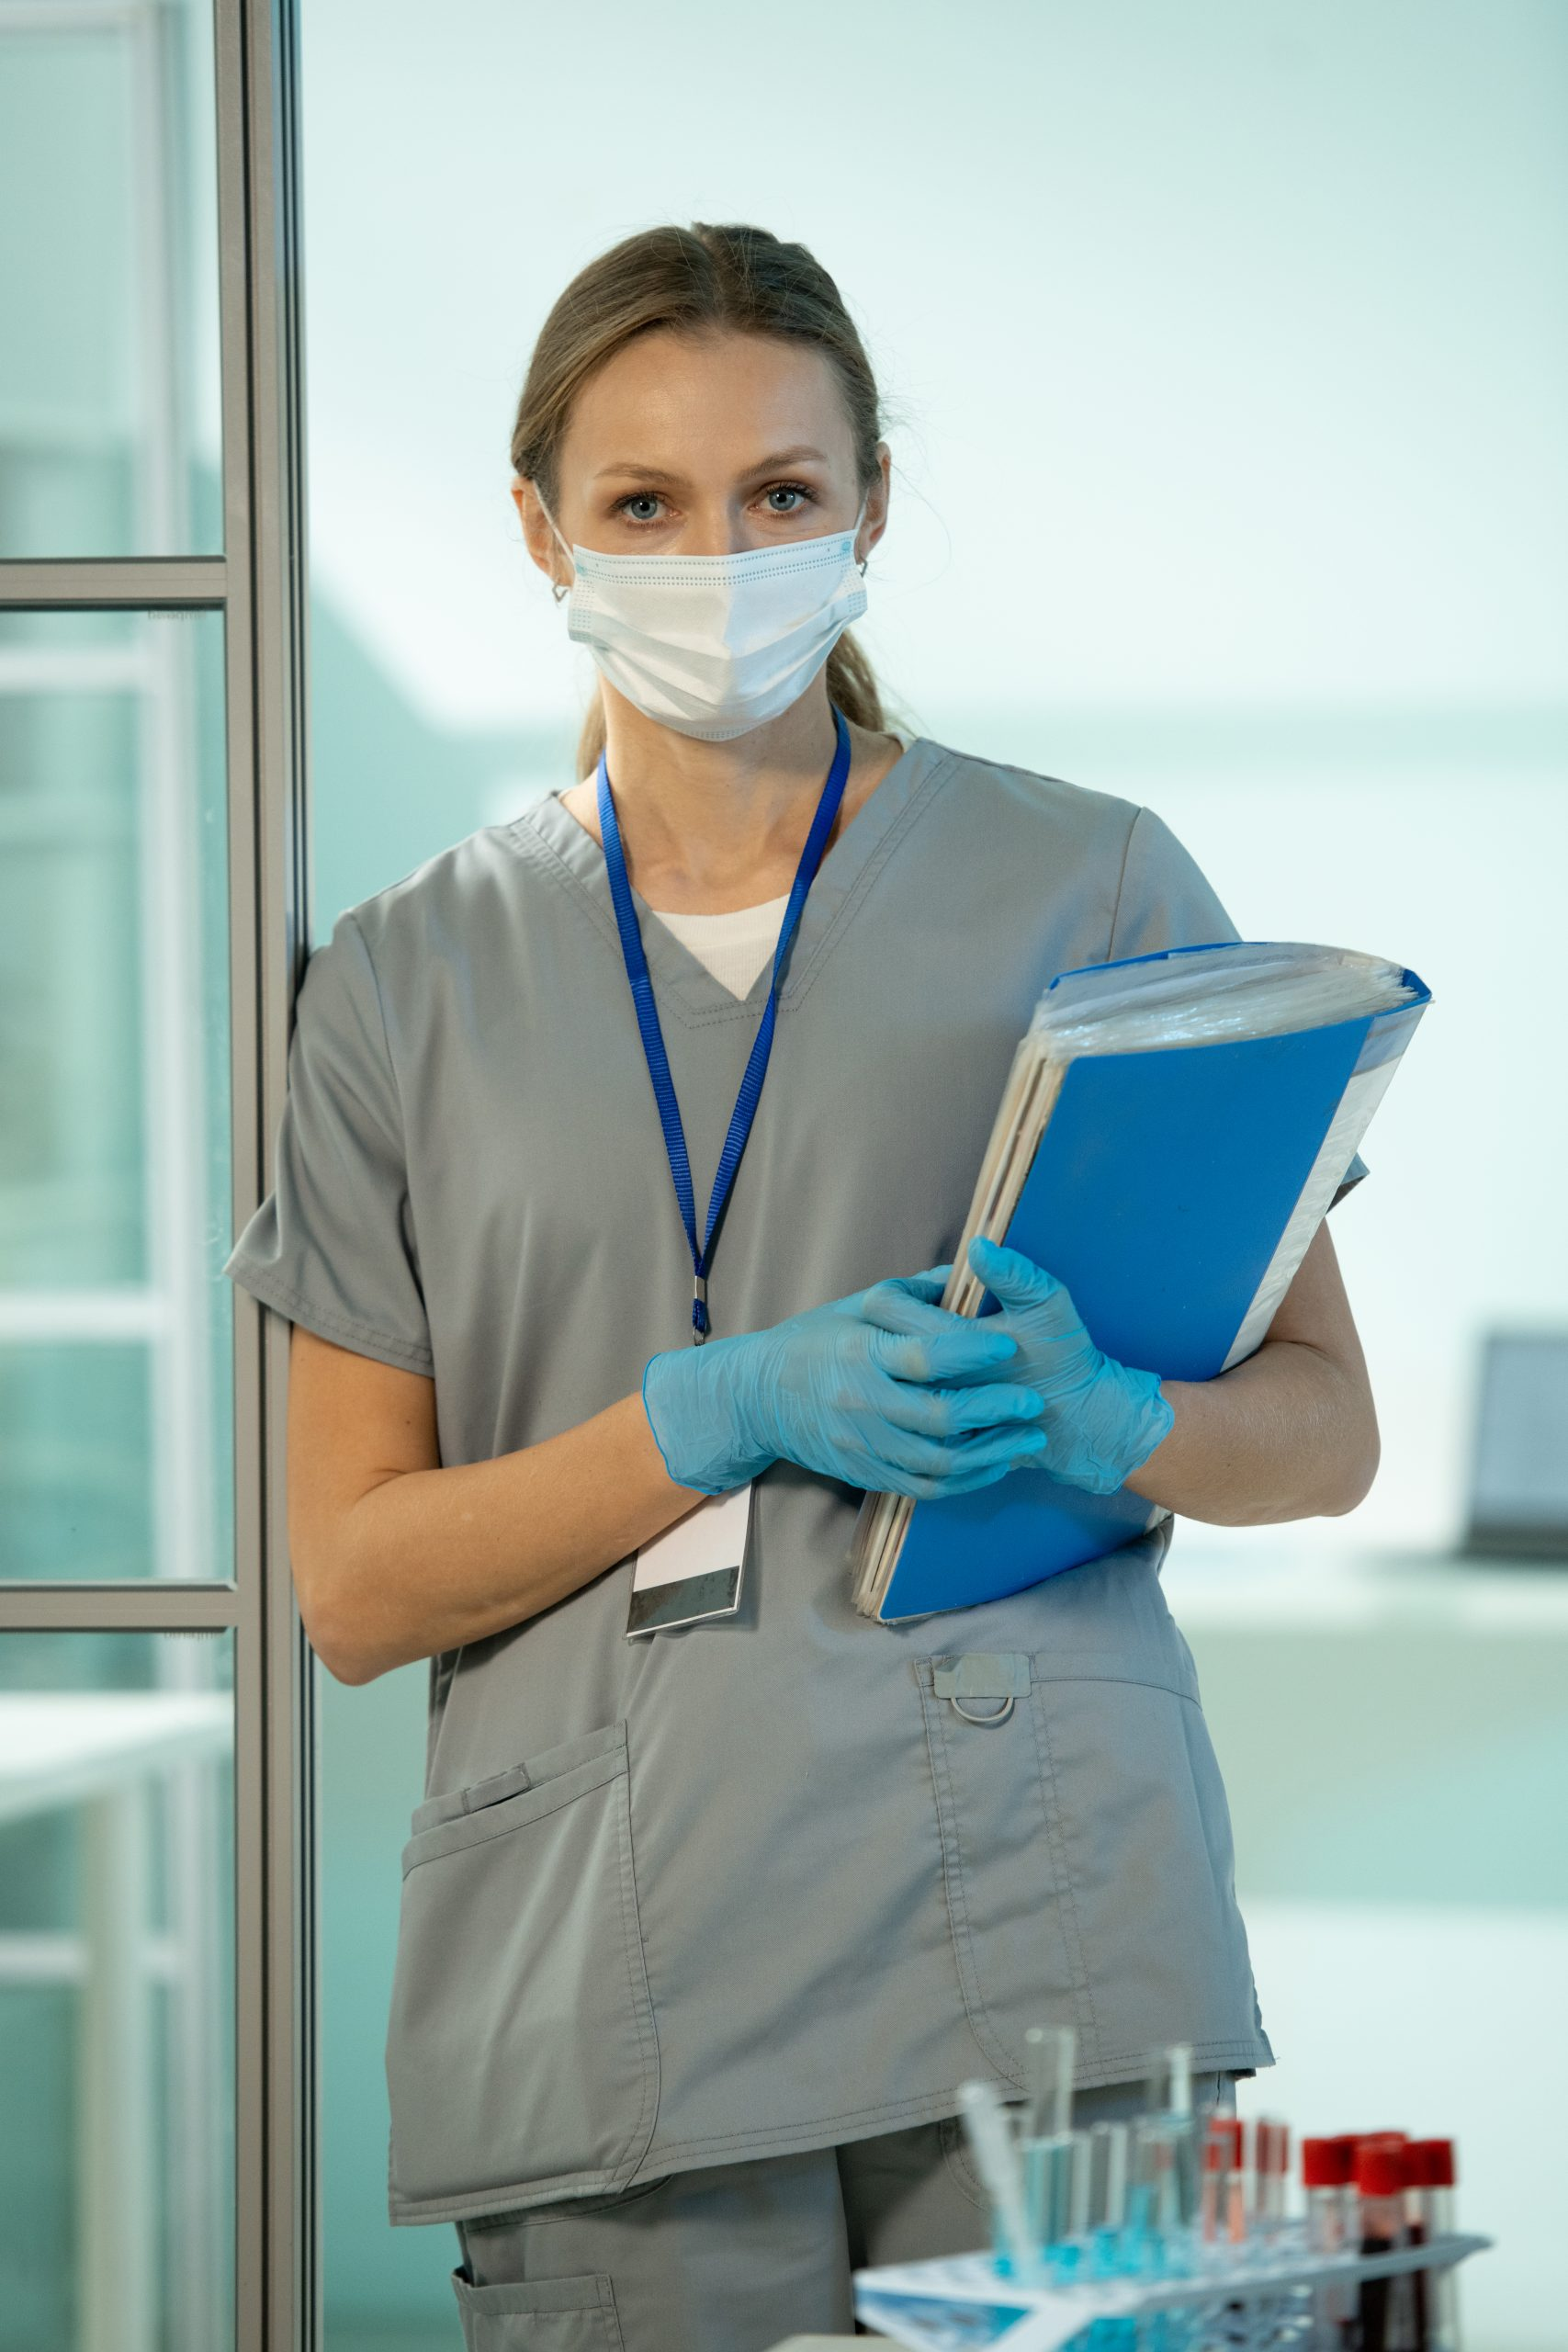 Young serious female clinician in uniform, protective mask and gloves holding medical documents while standing in chemical laboratory